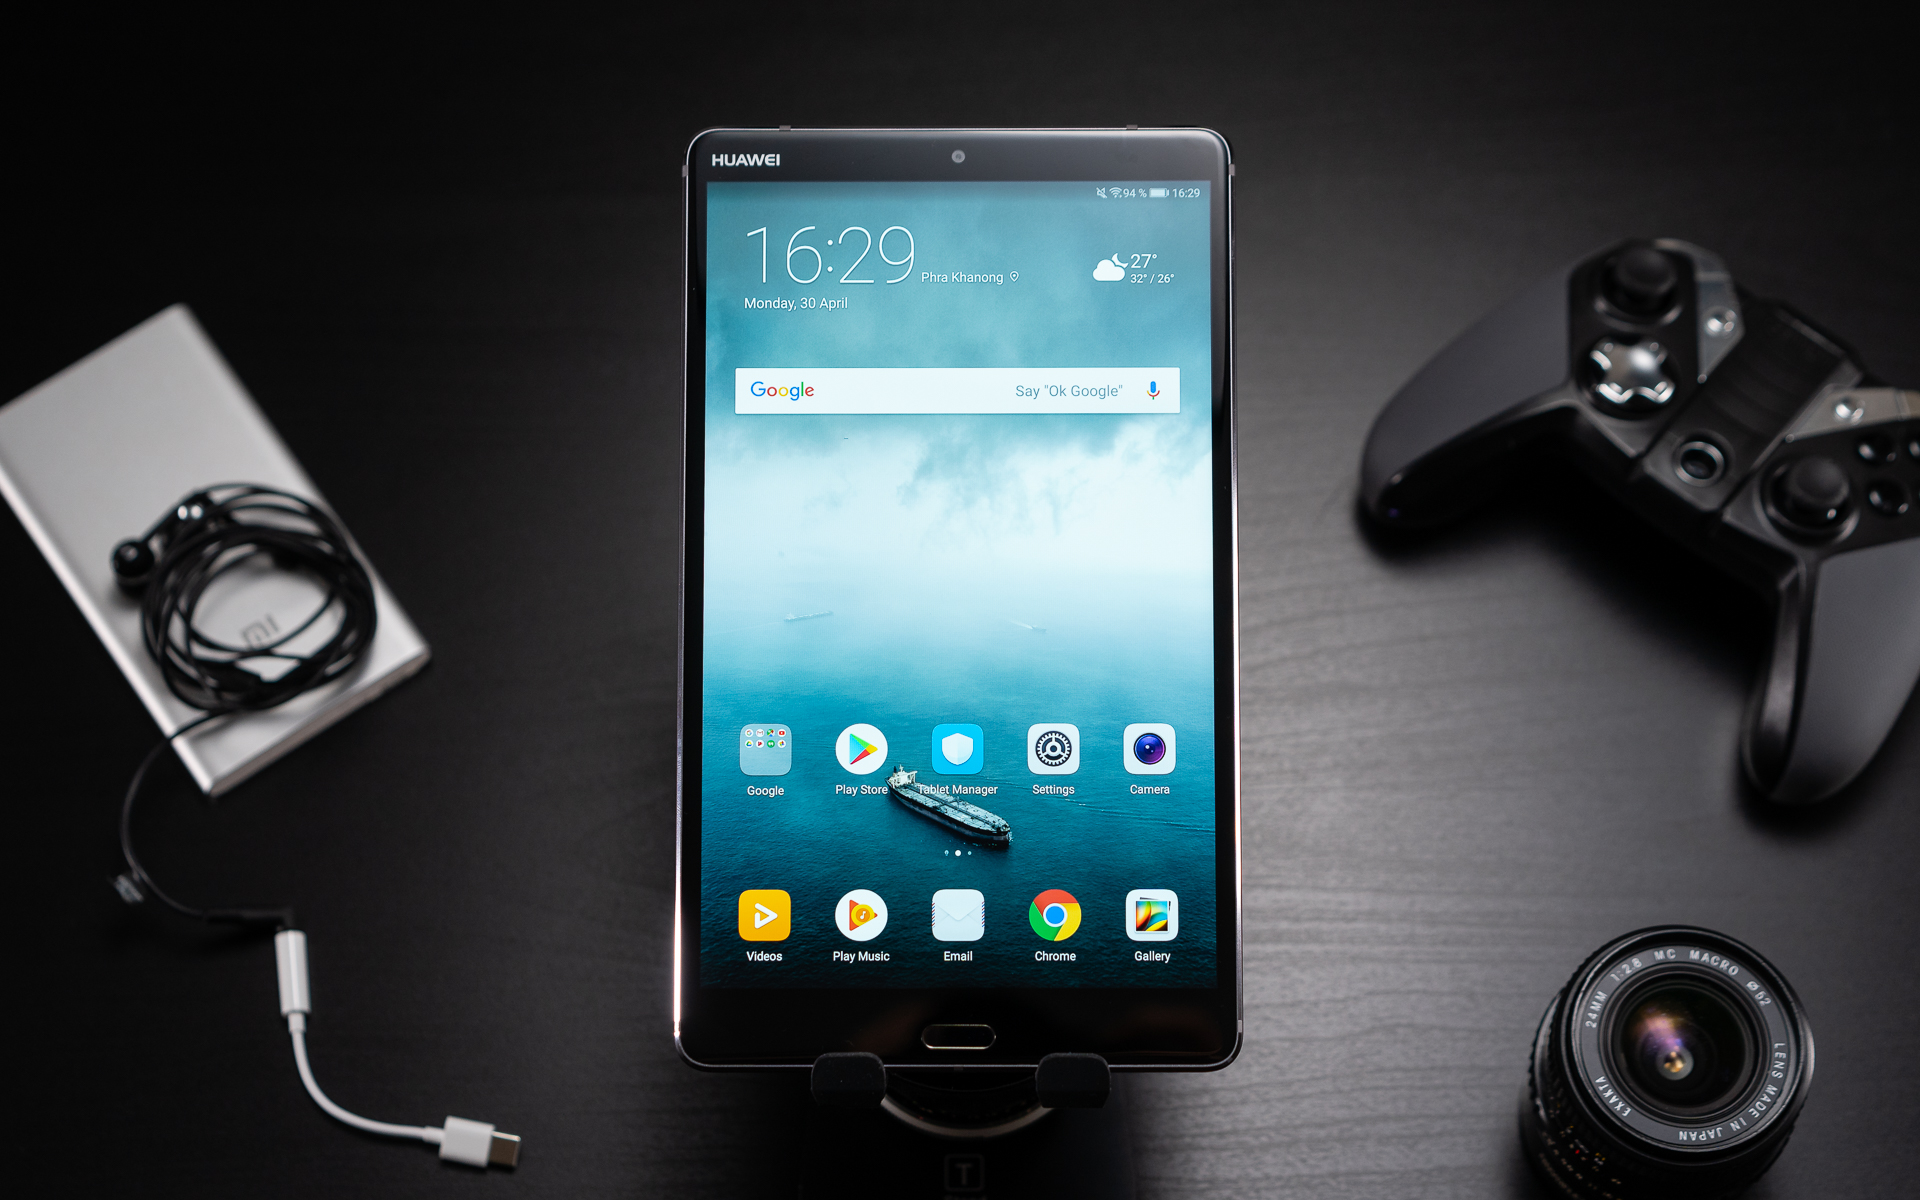 Huawei MediaPad M5 8 Review: The Best 8-Inch Android Tablet?